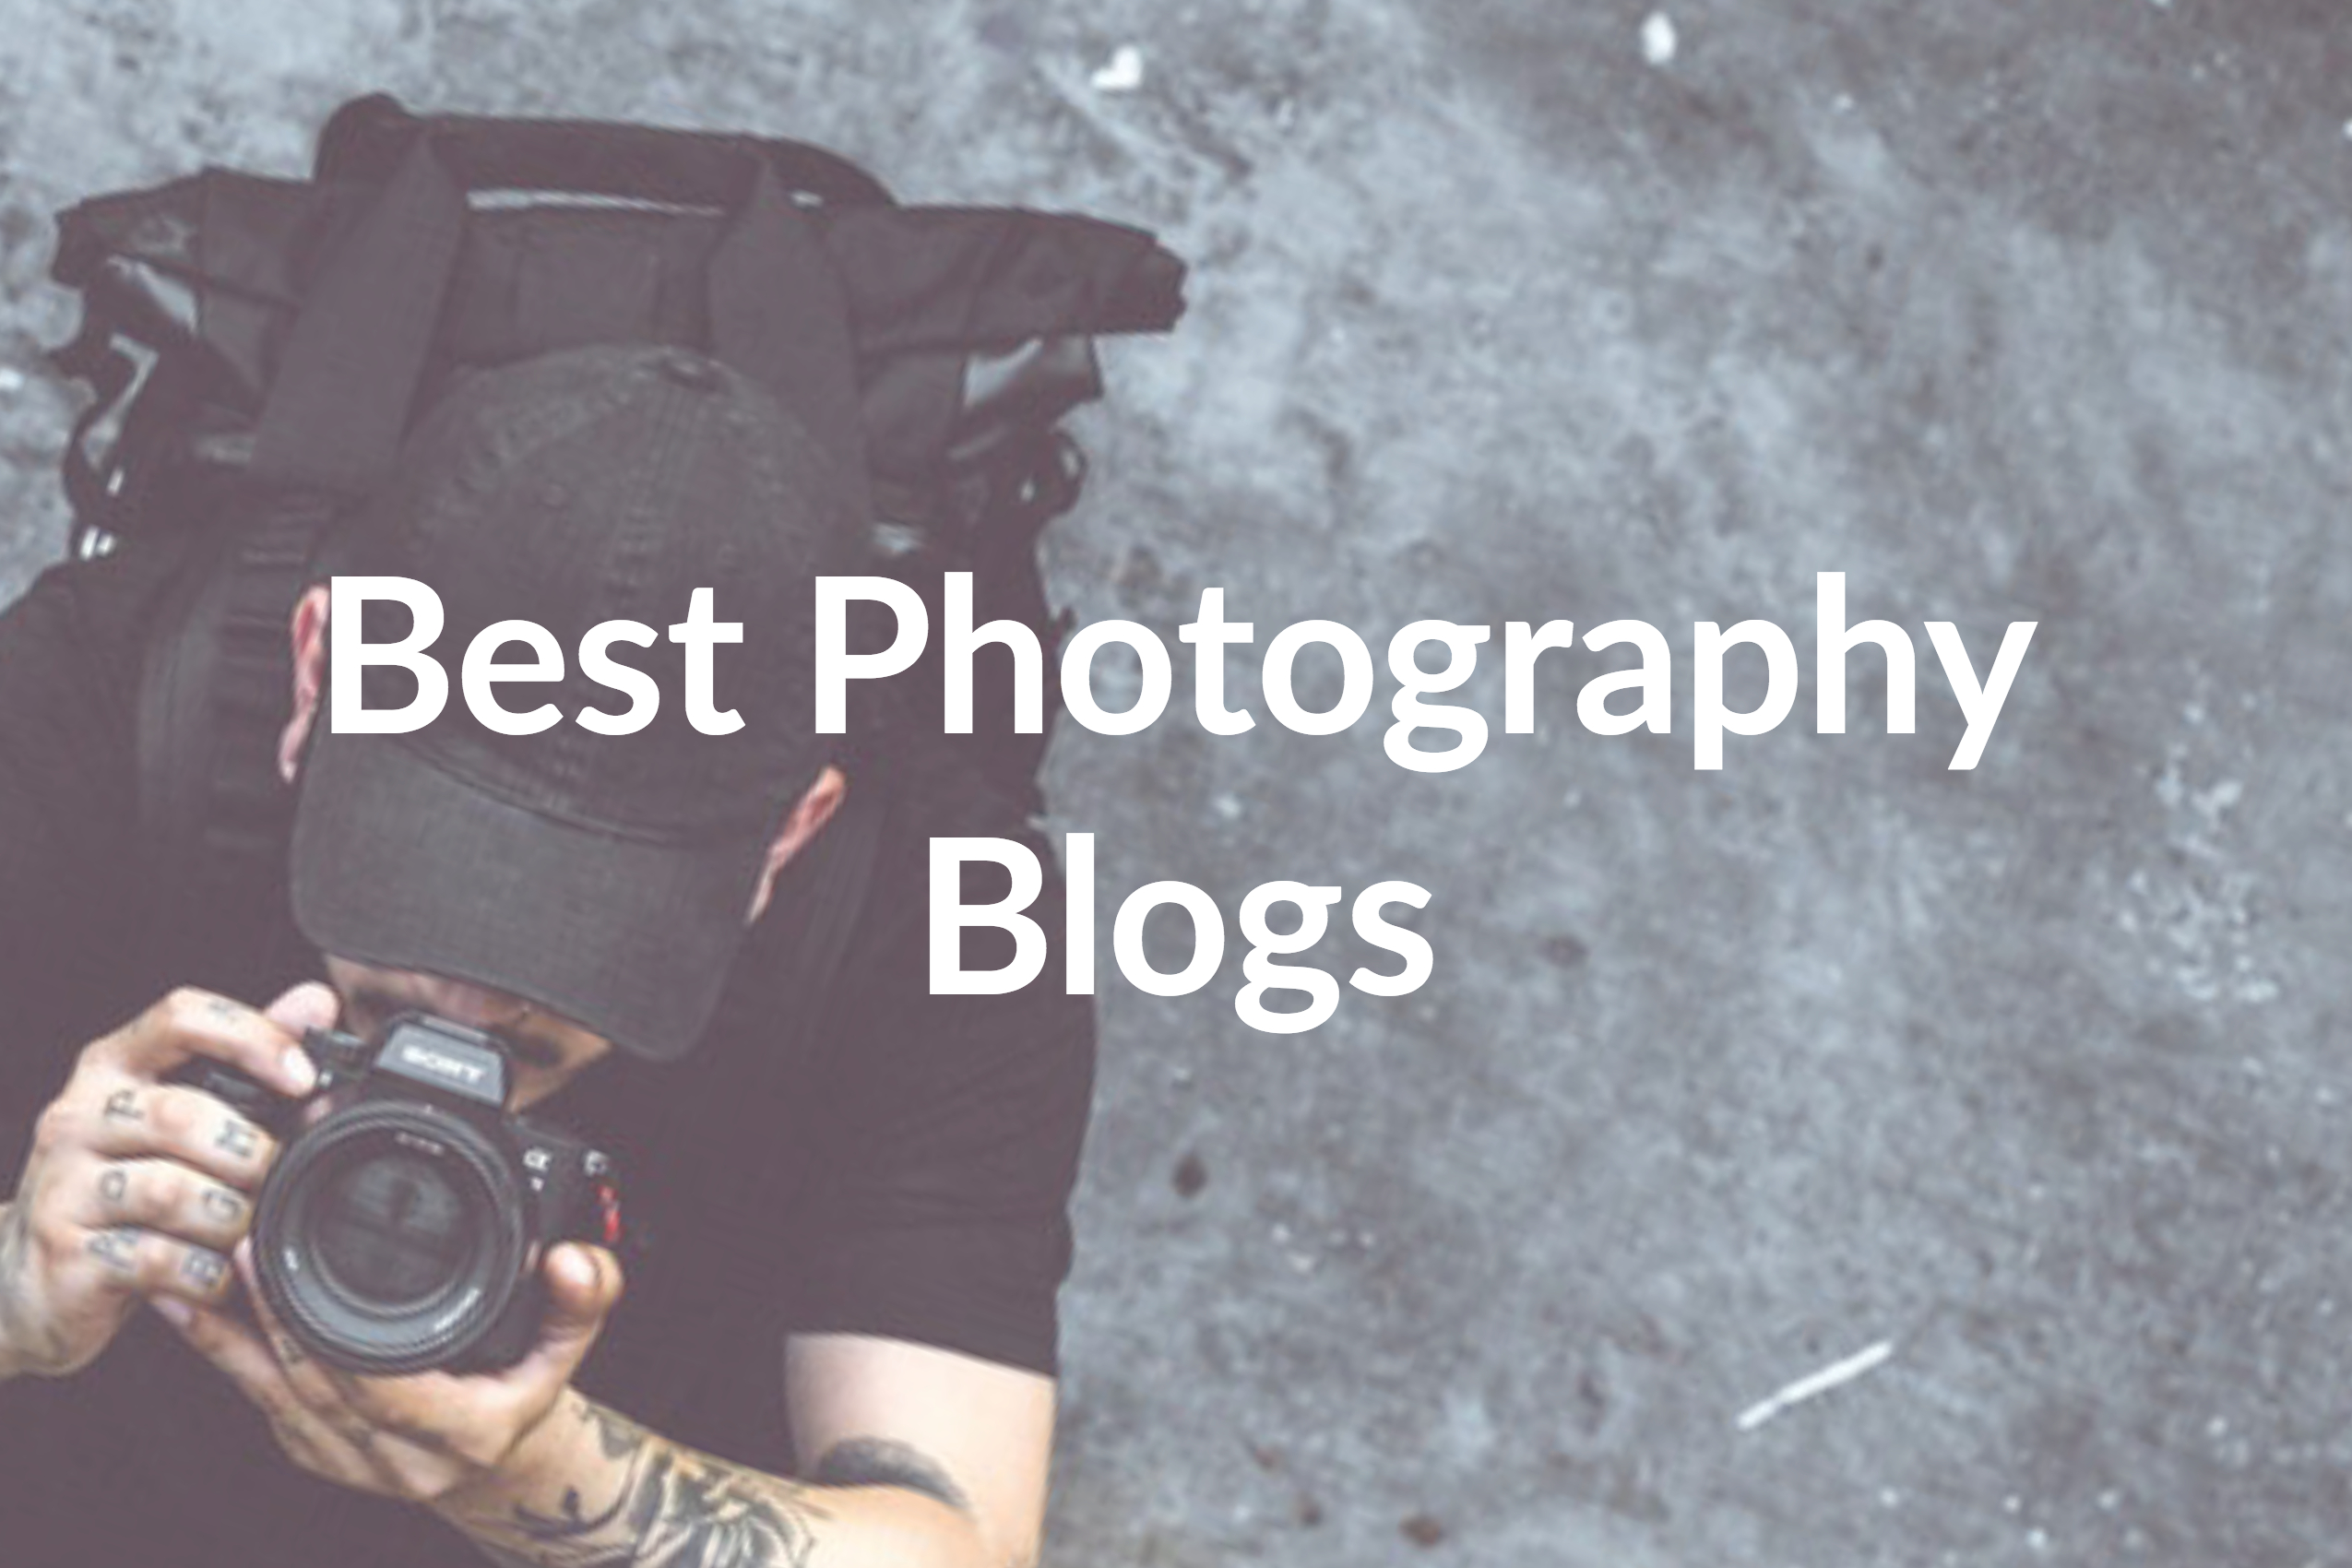 Best Photography Blogs: 7 You Need to Check out in 2019